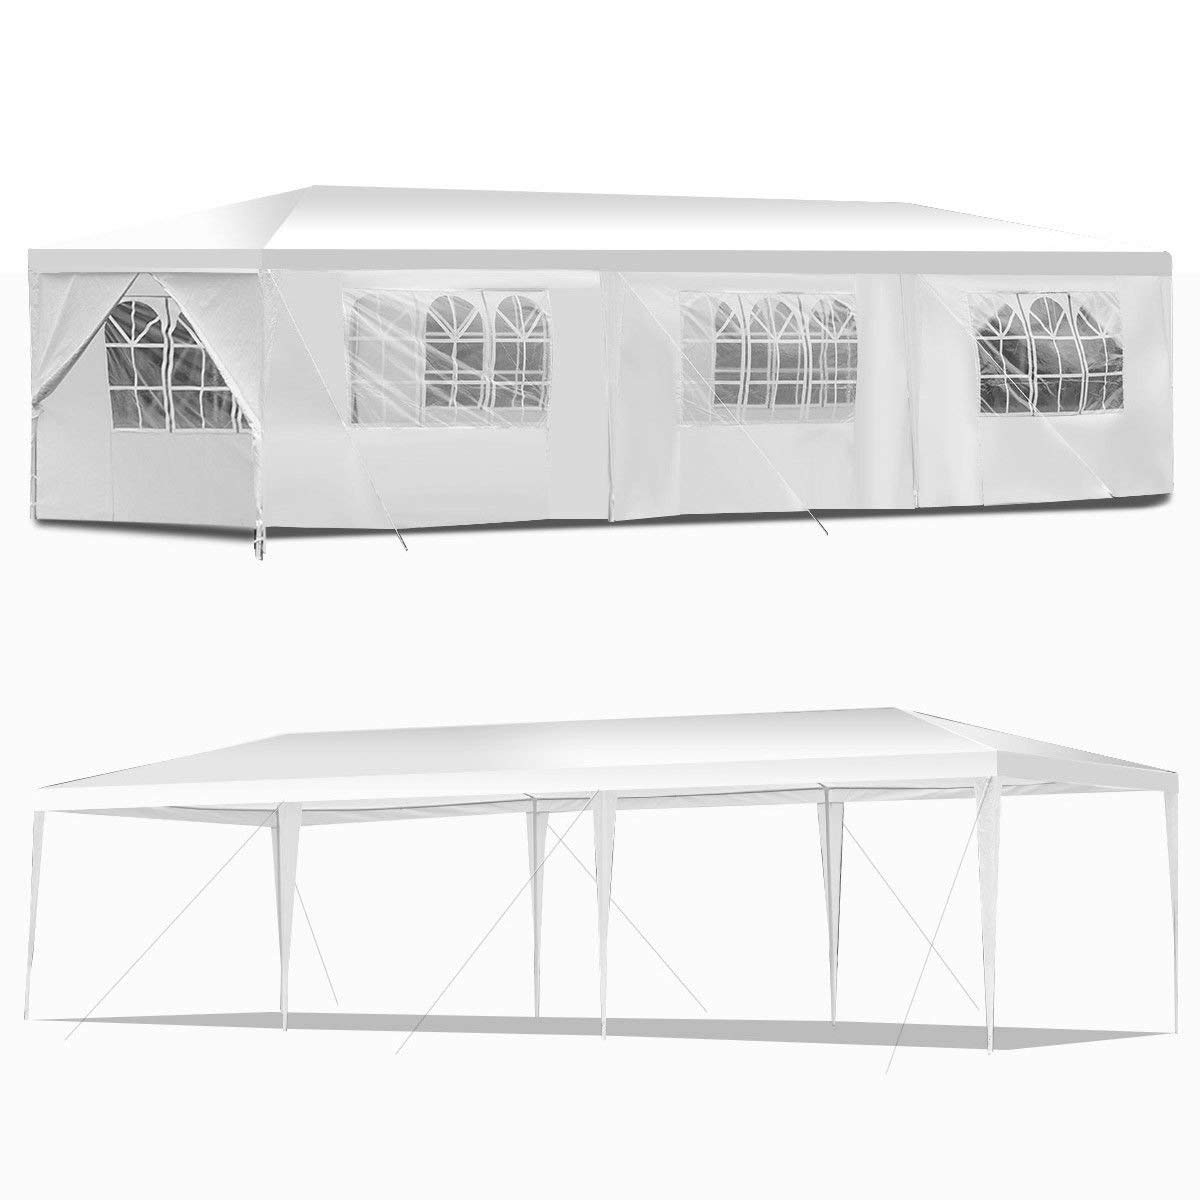 KCHEX>10'x30' Canopy Party Wedding Tent Outdoor Heavy Duty Gazebo Events>This is Our Brand New and 10'x30' Canopy Wedding Party Tent can be conveniently Carried and are Perfect for Many o